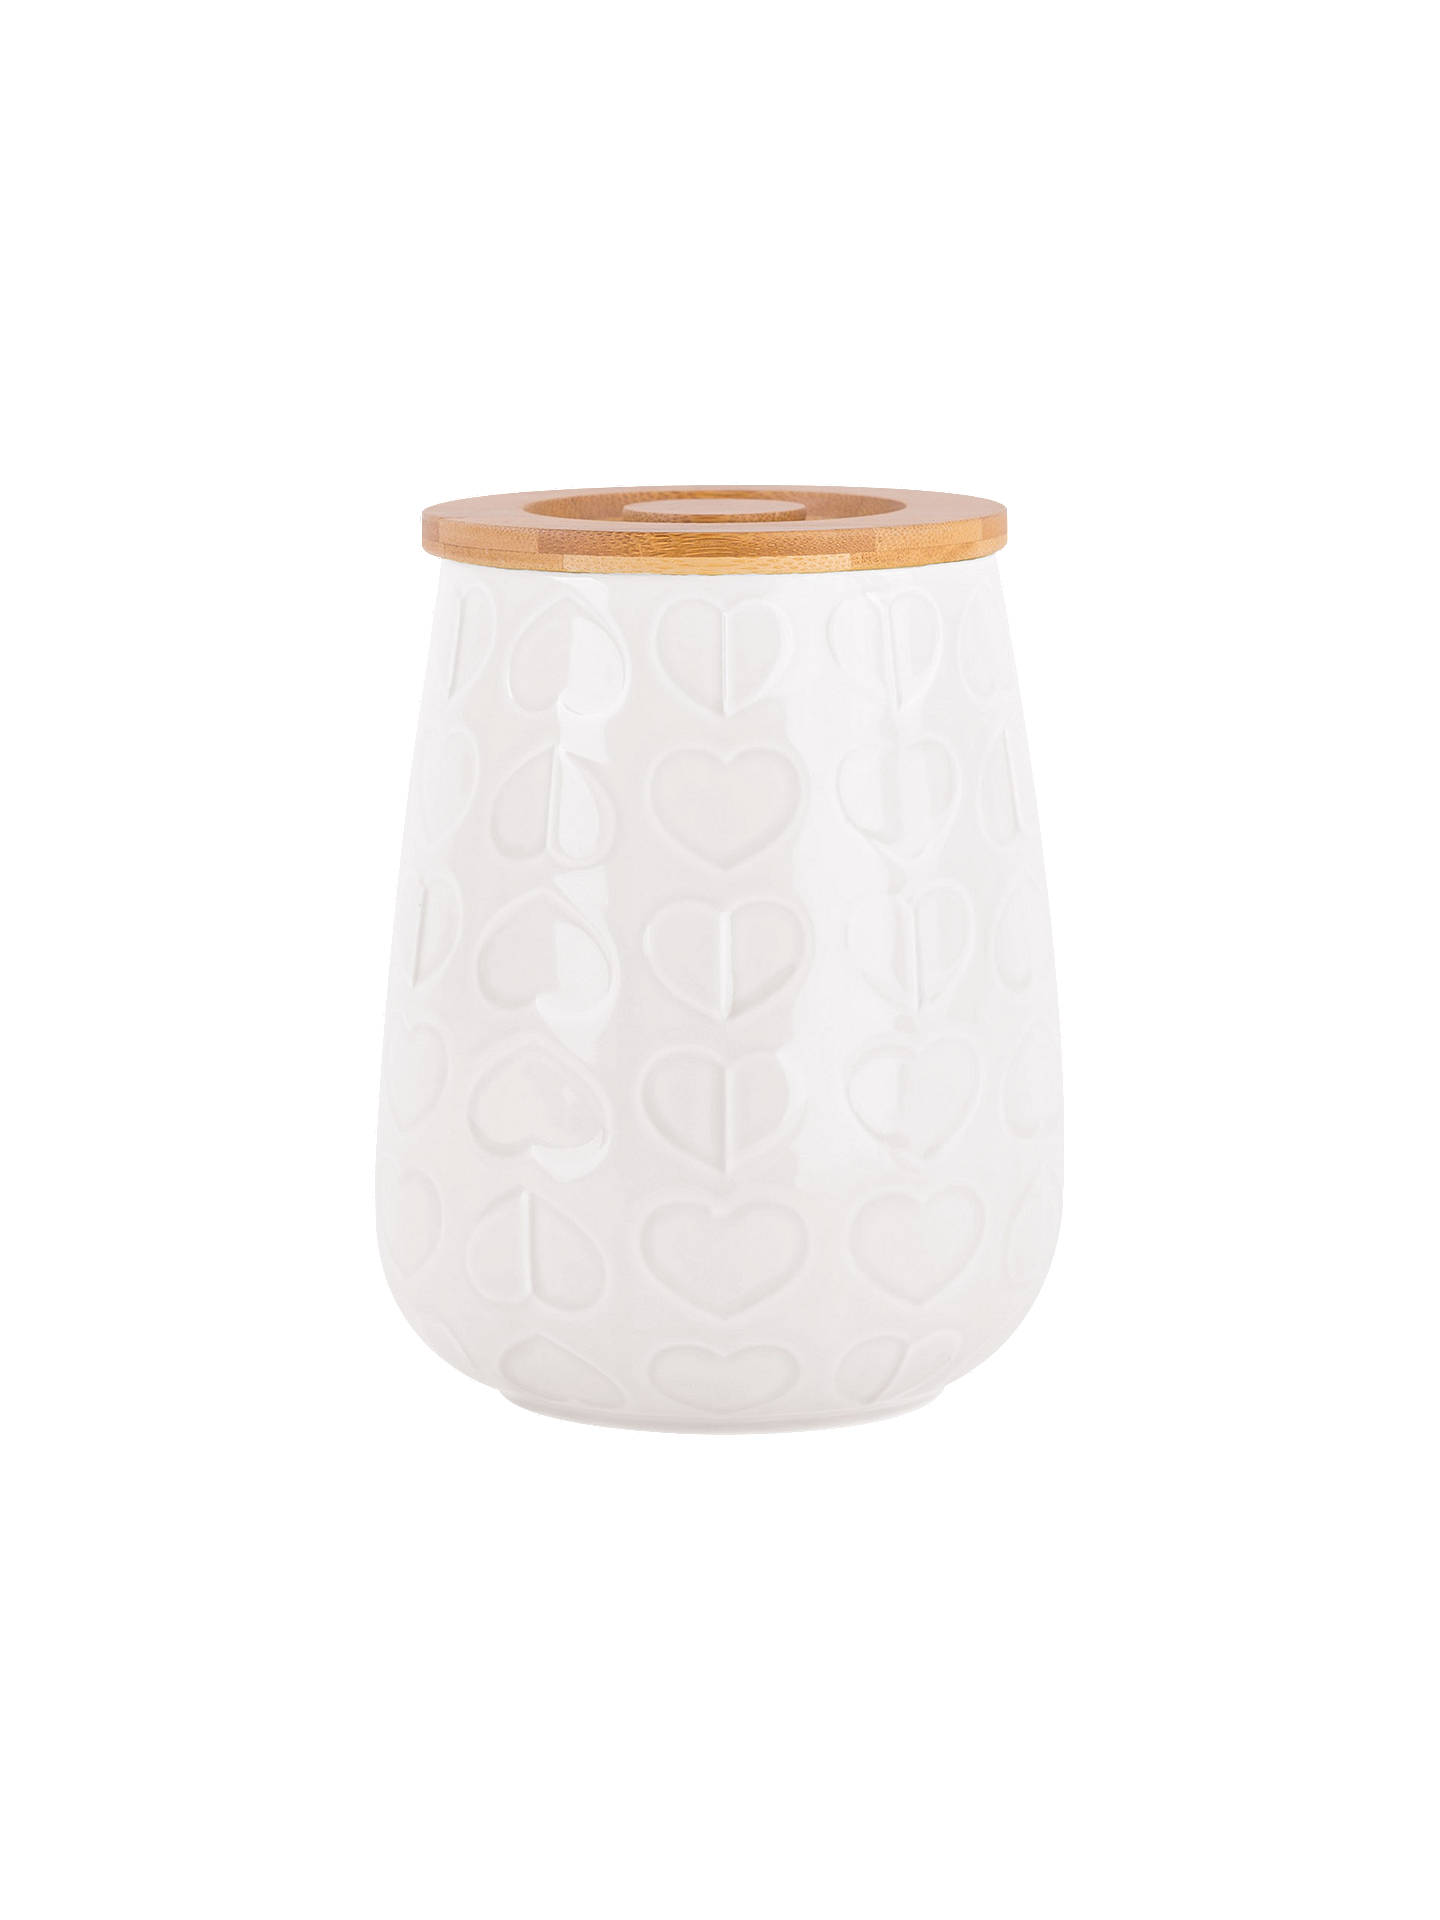 BuyBeau & Elliot Embossed Ceramic Medium Jar with Wood Lid, White Online at johnlewis.com